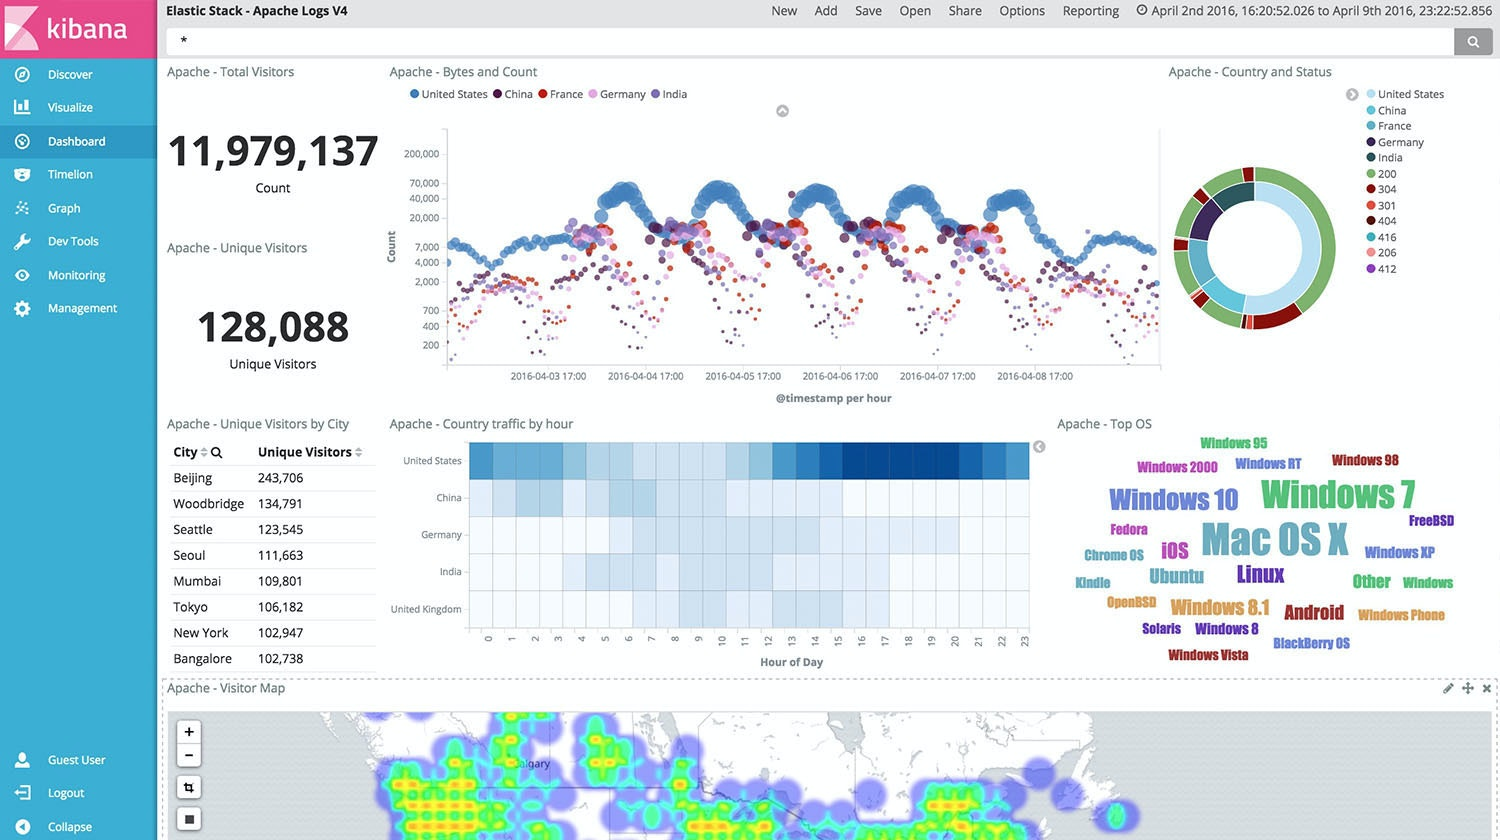 kibana-screenshot-aspot.jpg